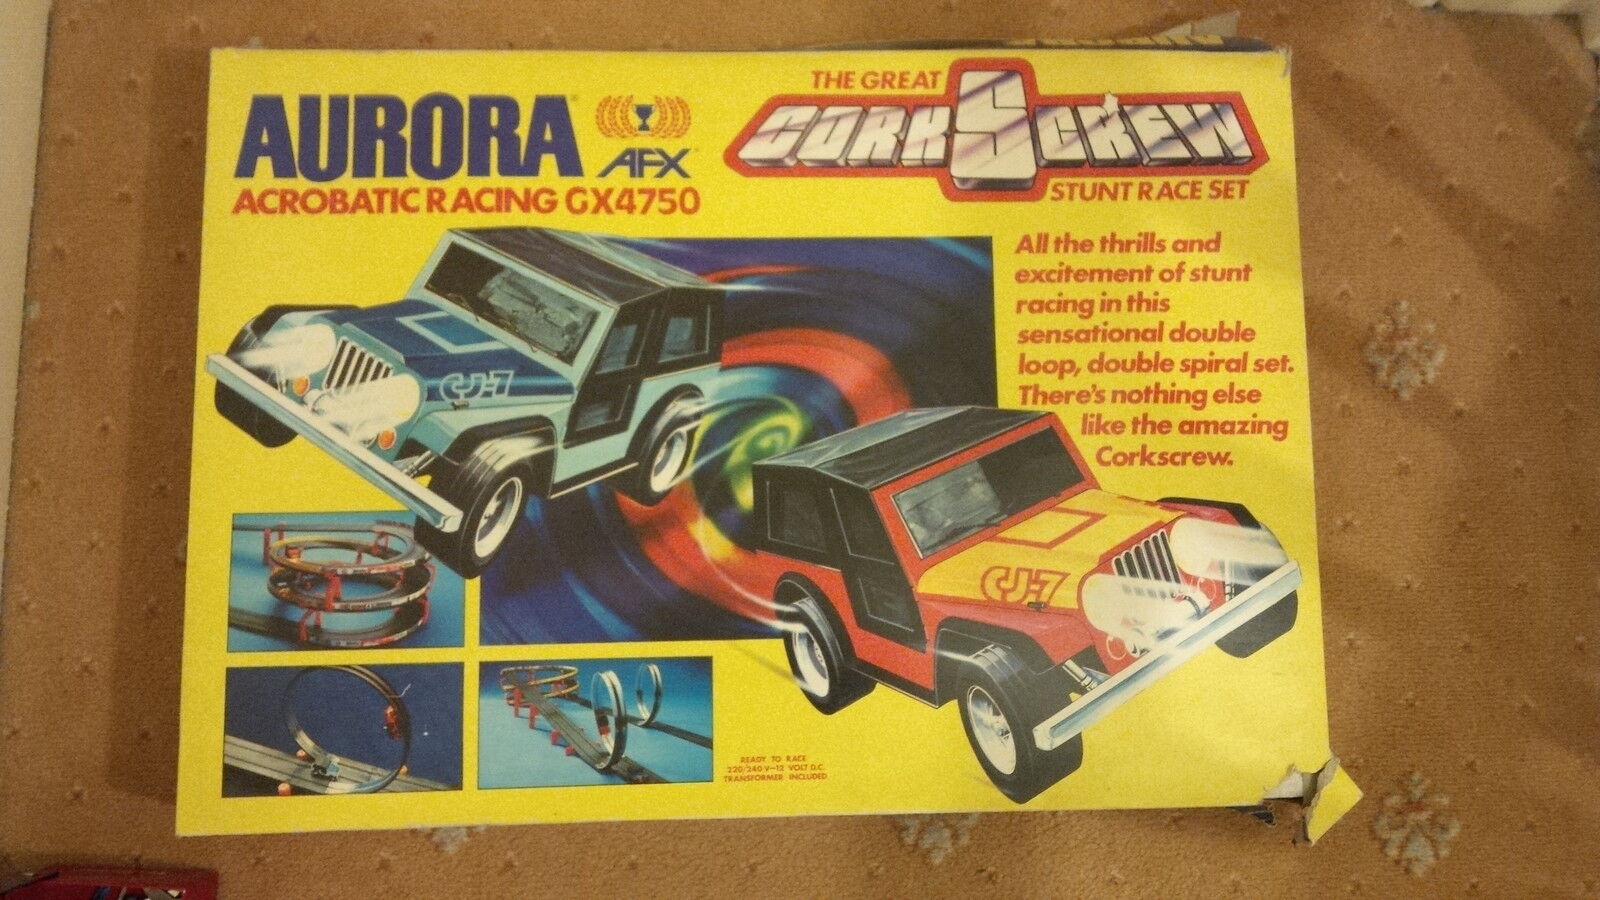 AURORA AFX  The Great Corkscrew Stunt Race  Slot Race set GX4750 RARE